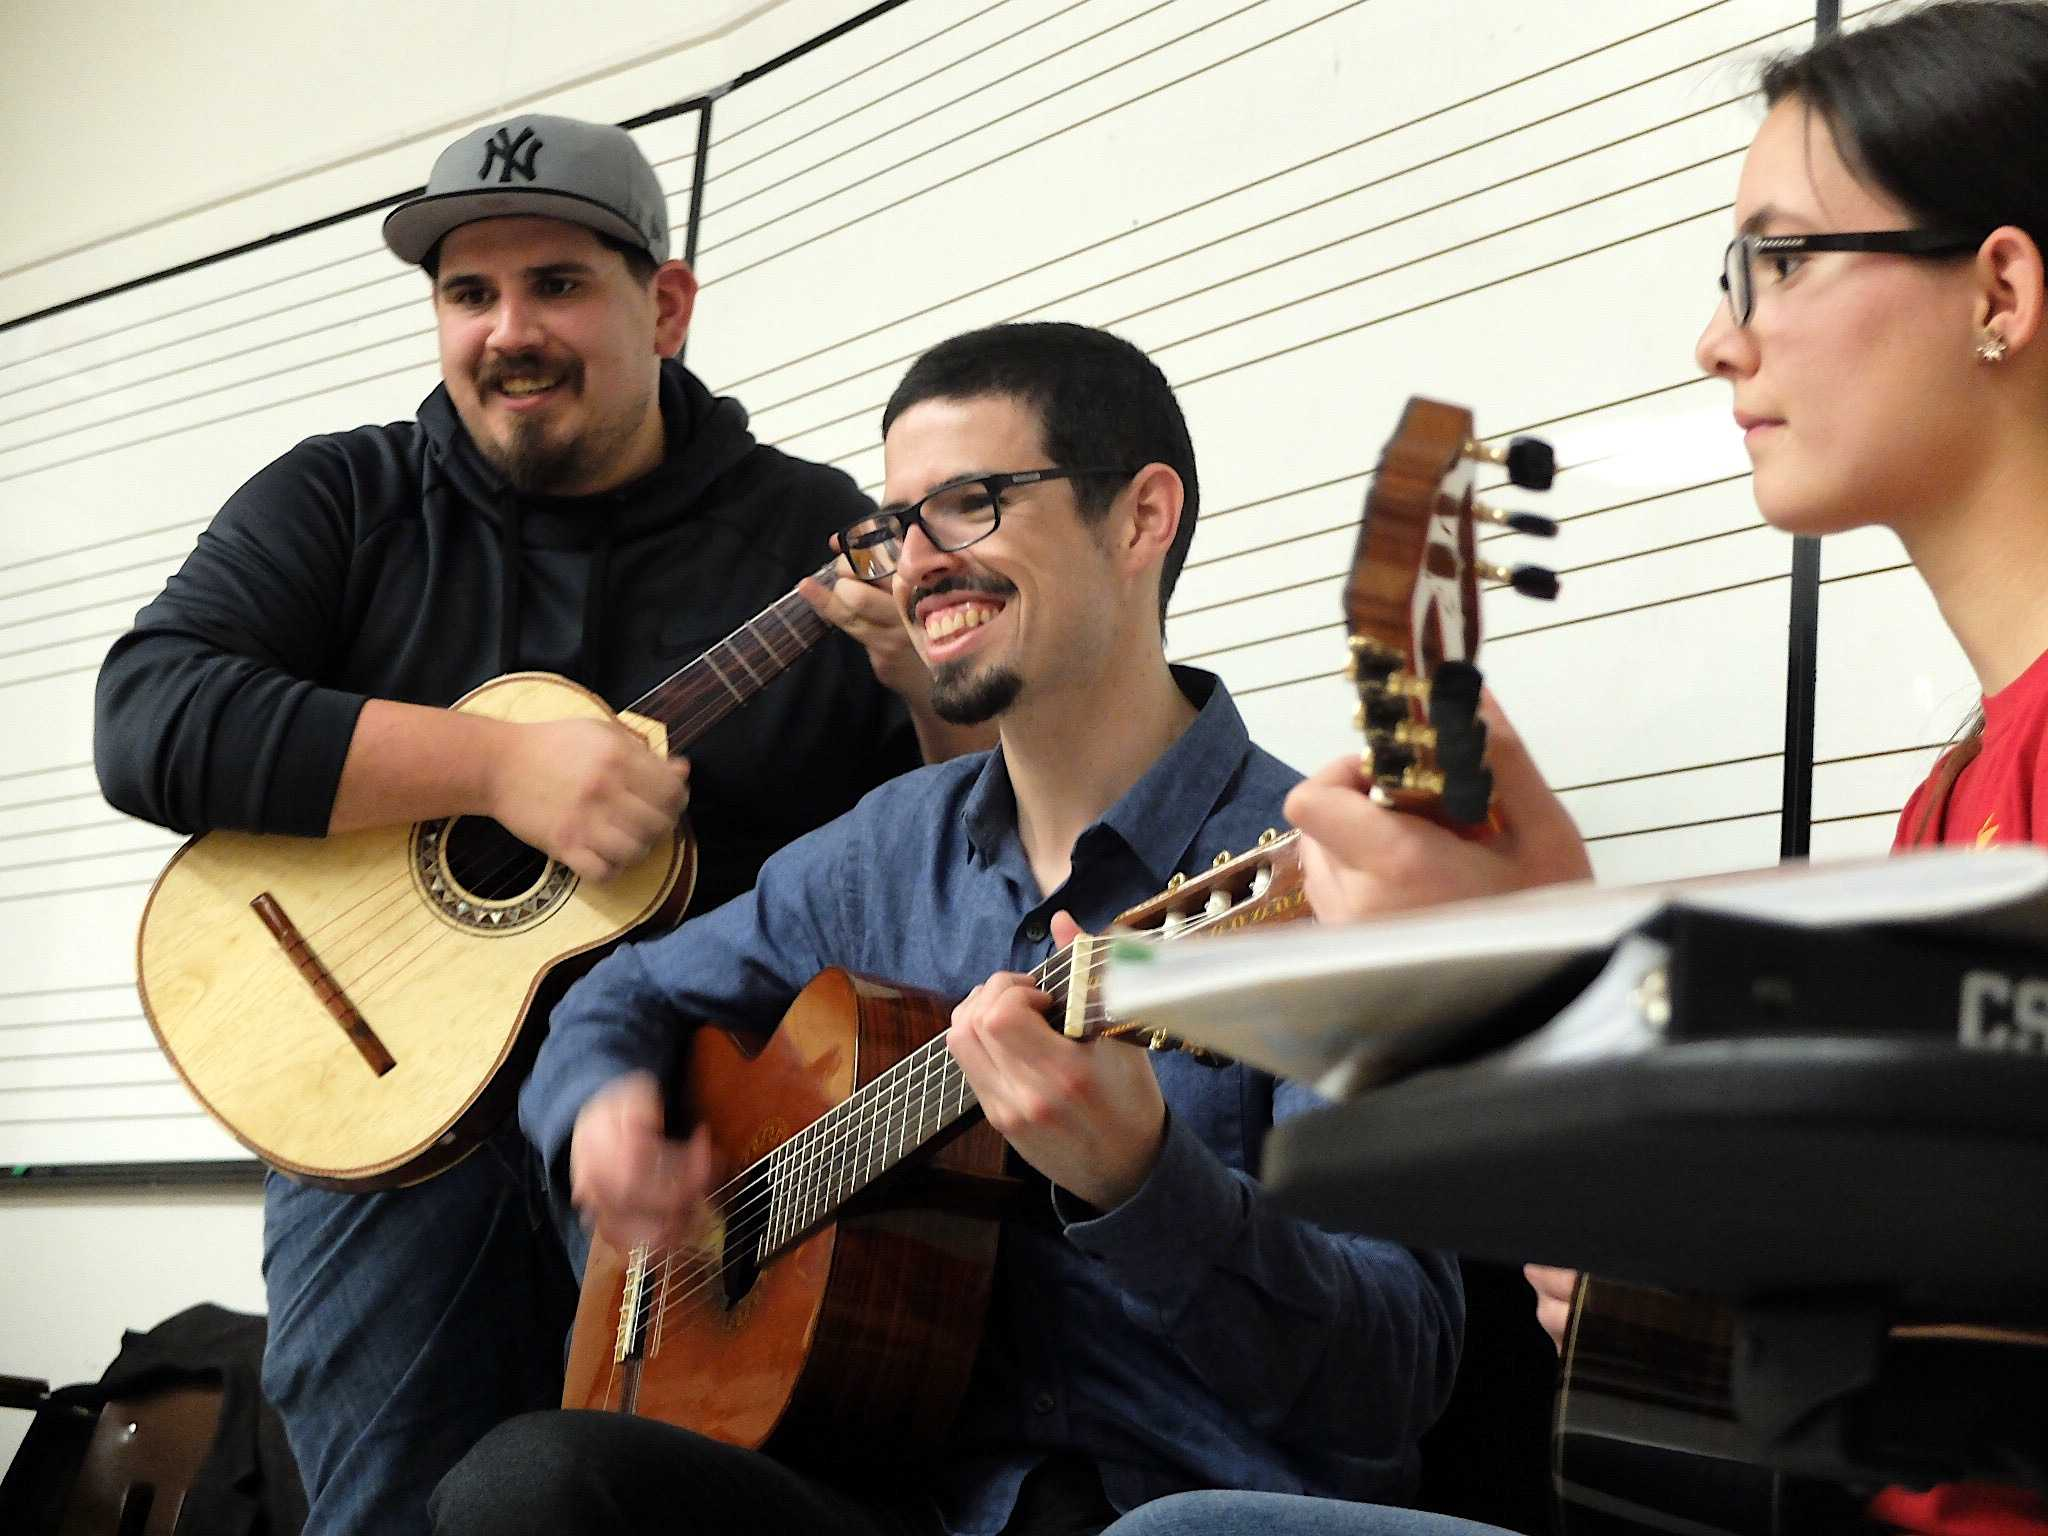 Members of the CSUN Latino Music Ensemble smile as they find the right groove during rehearsal on March 19 inside Cypress Hall.   From left to right: Carlos Alberto Carrasco, Enrique Garcia, Isabel Munoz Photo credit: Emmanuelle Roumain